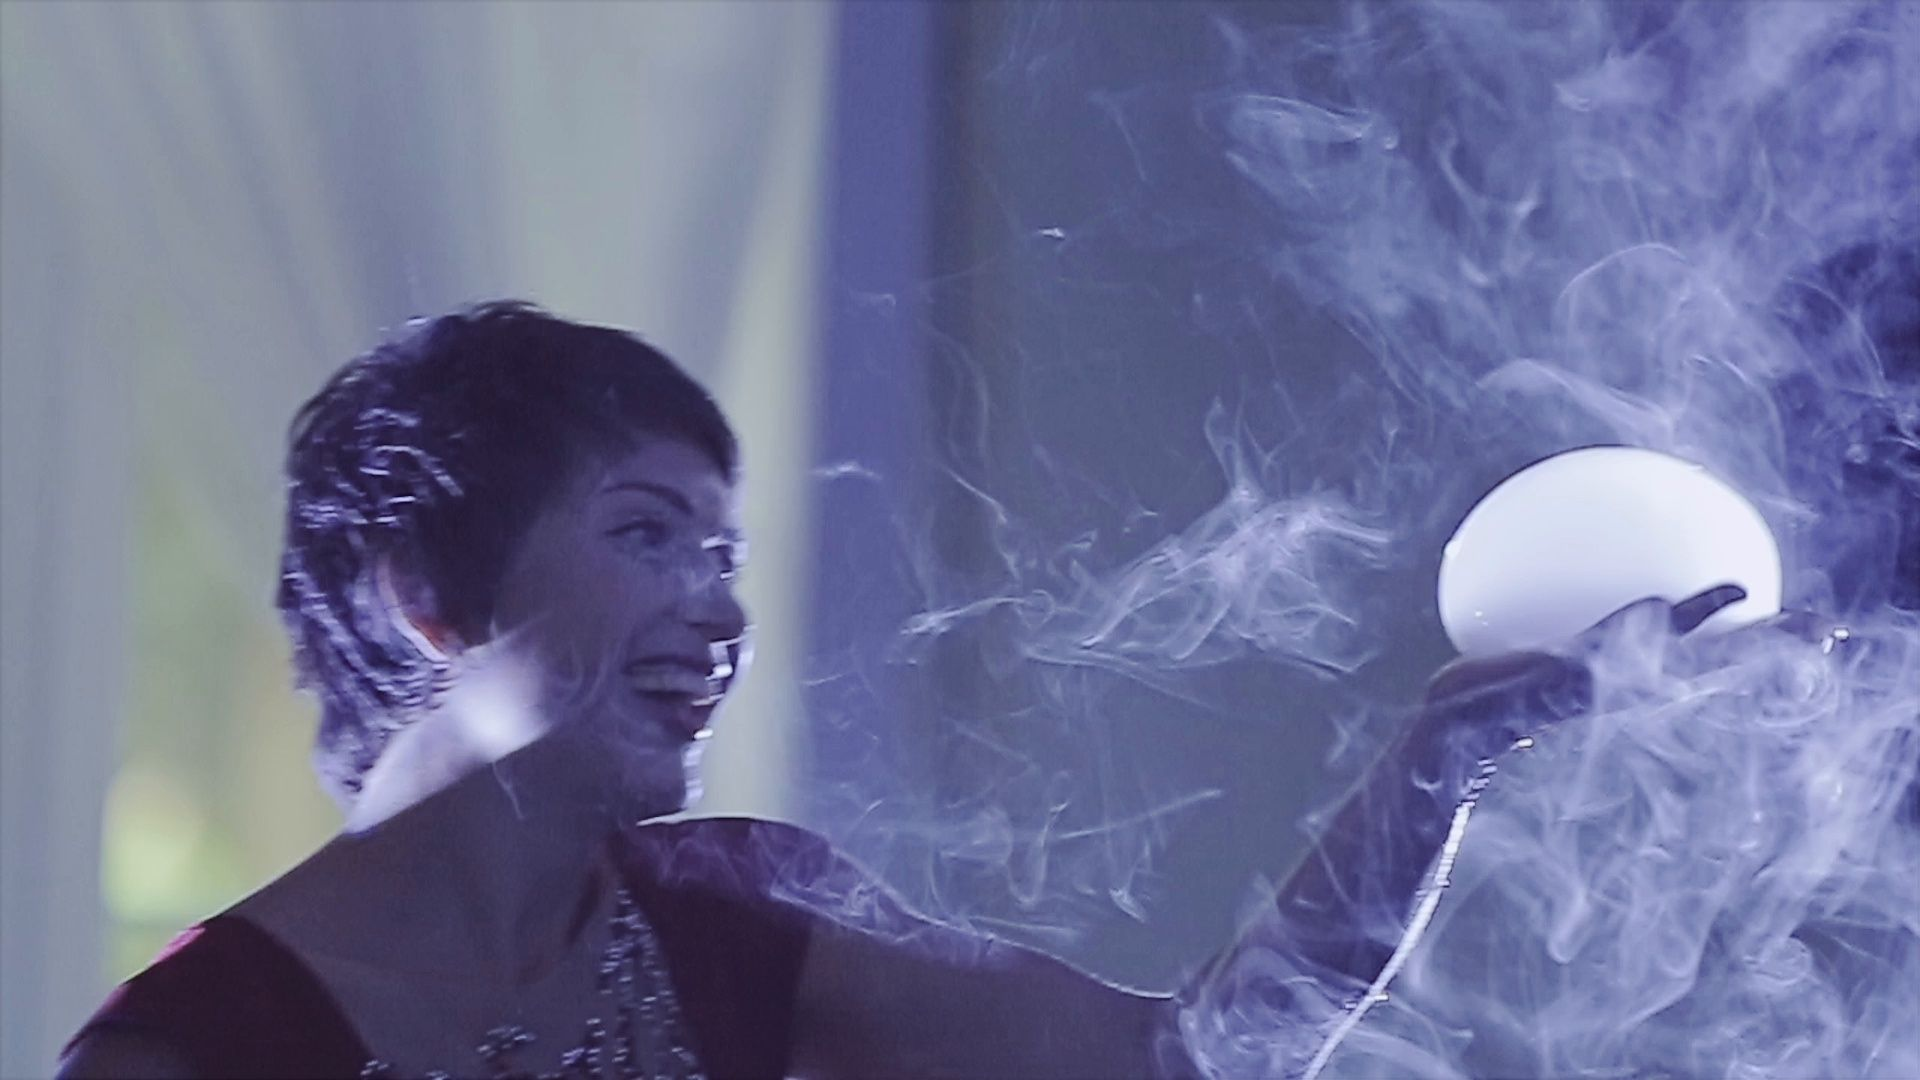 A wonderful show of soap bubbles with smoke and beautiful